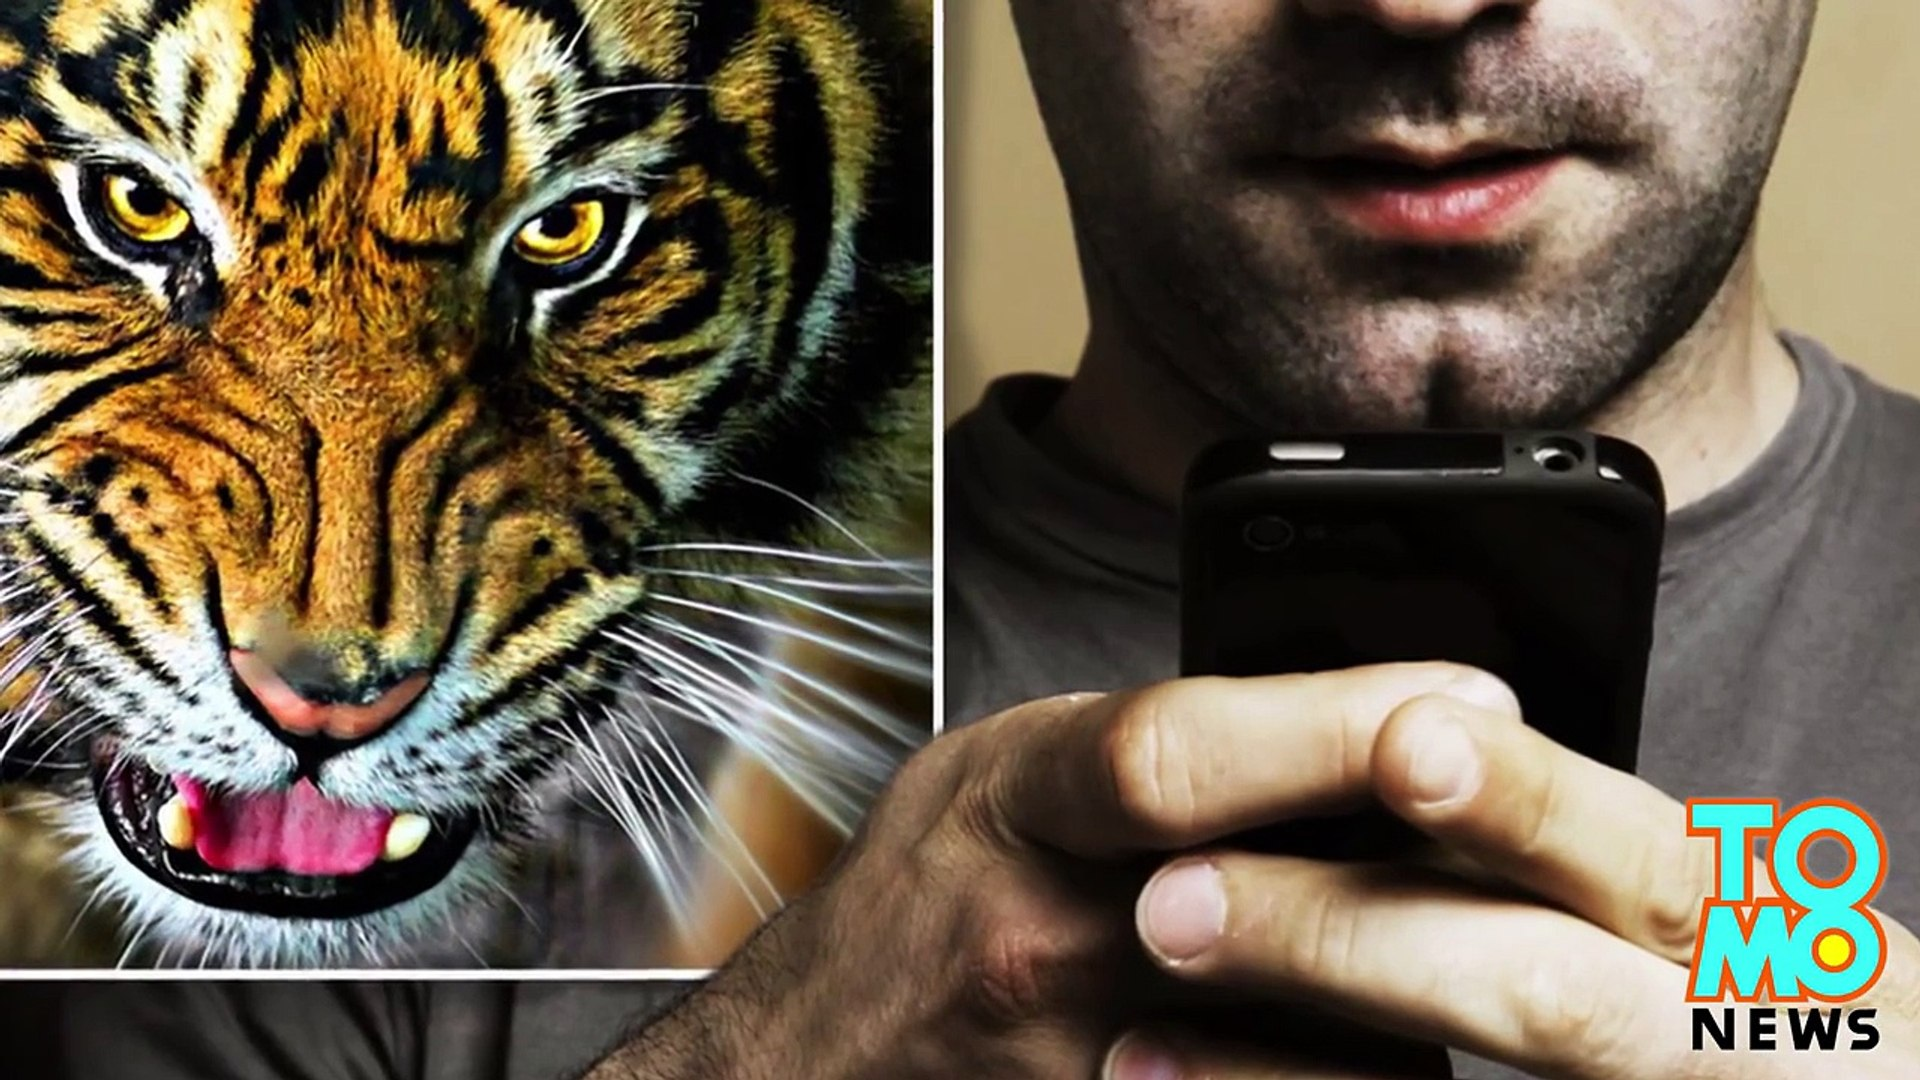 Animal sex: Illegal 'tiger sex' video turns out to be fake, ruins mans life - compilation